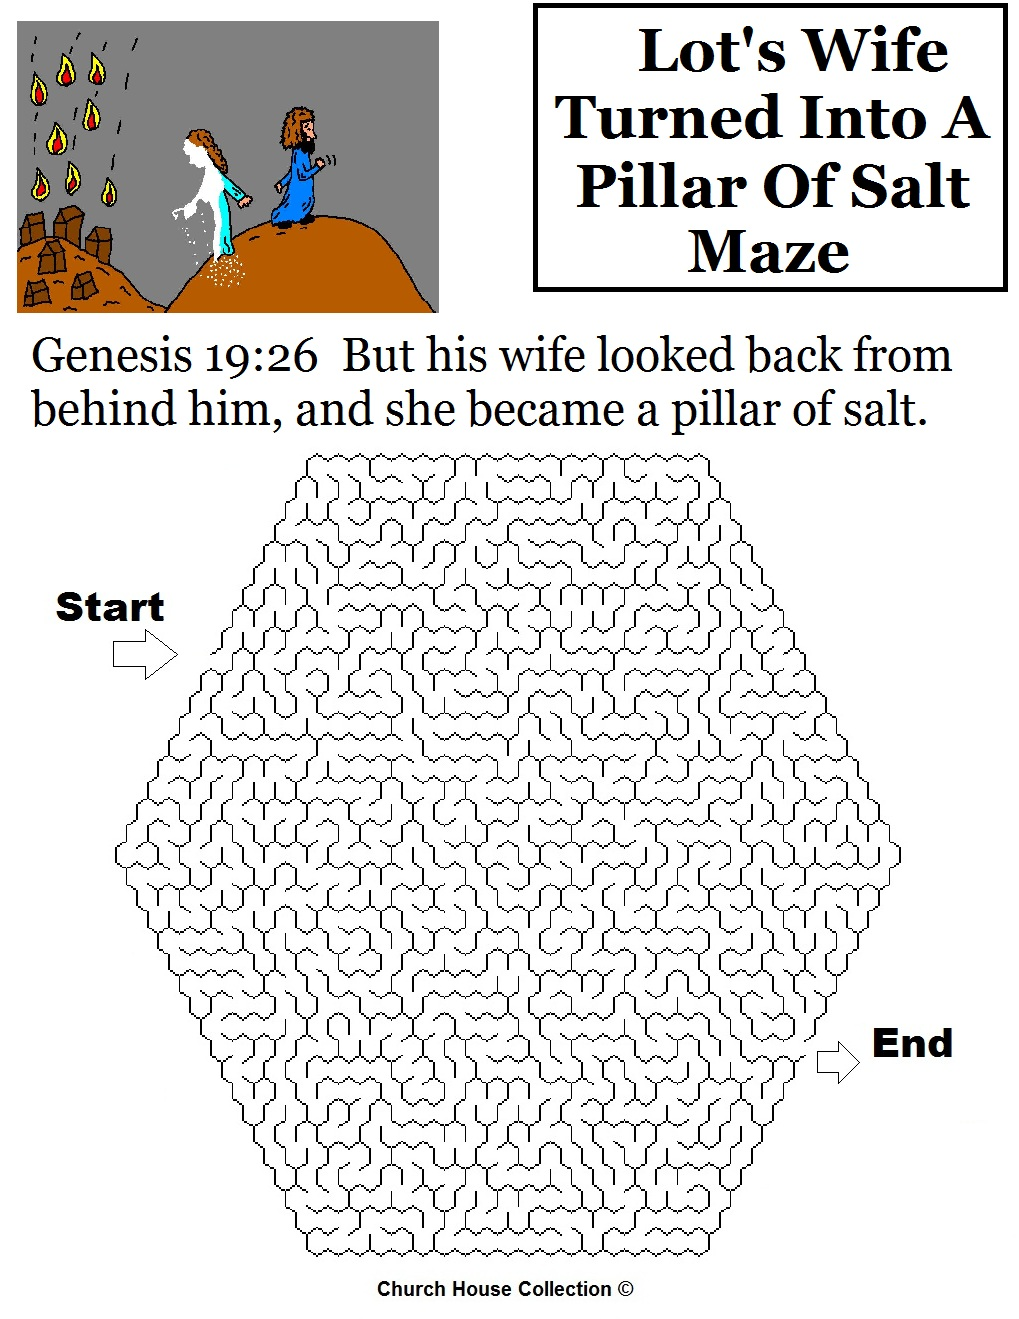 Lots Wife Turned Into A Pillar Of Salt Maze